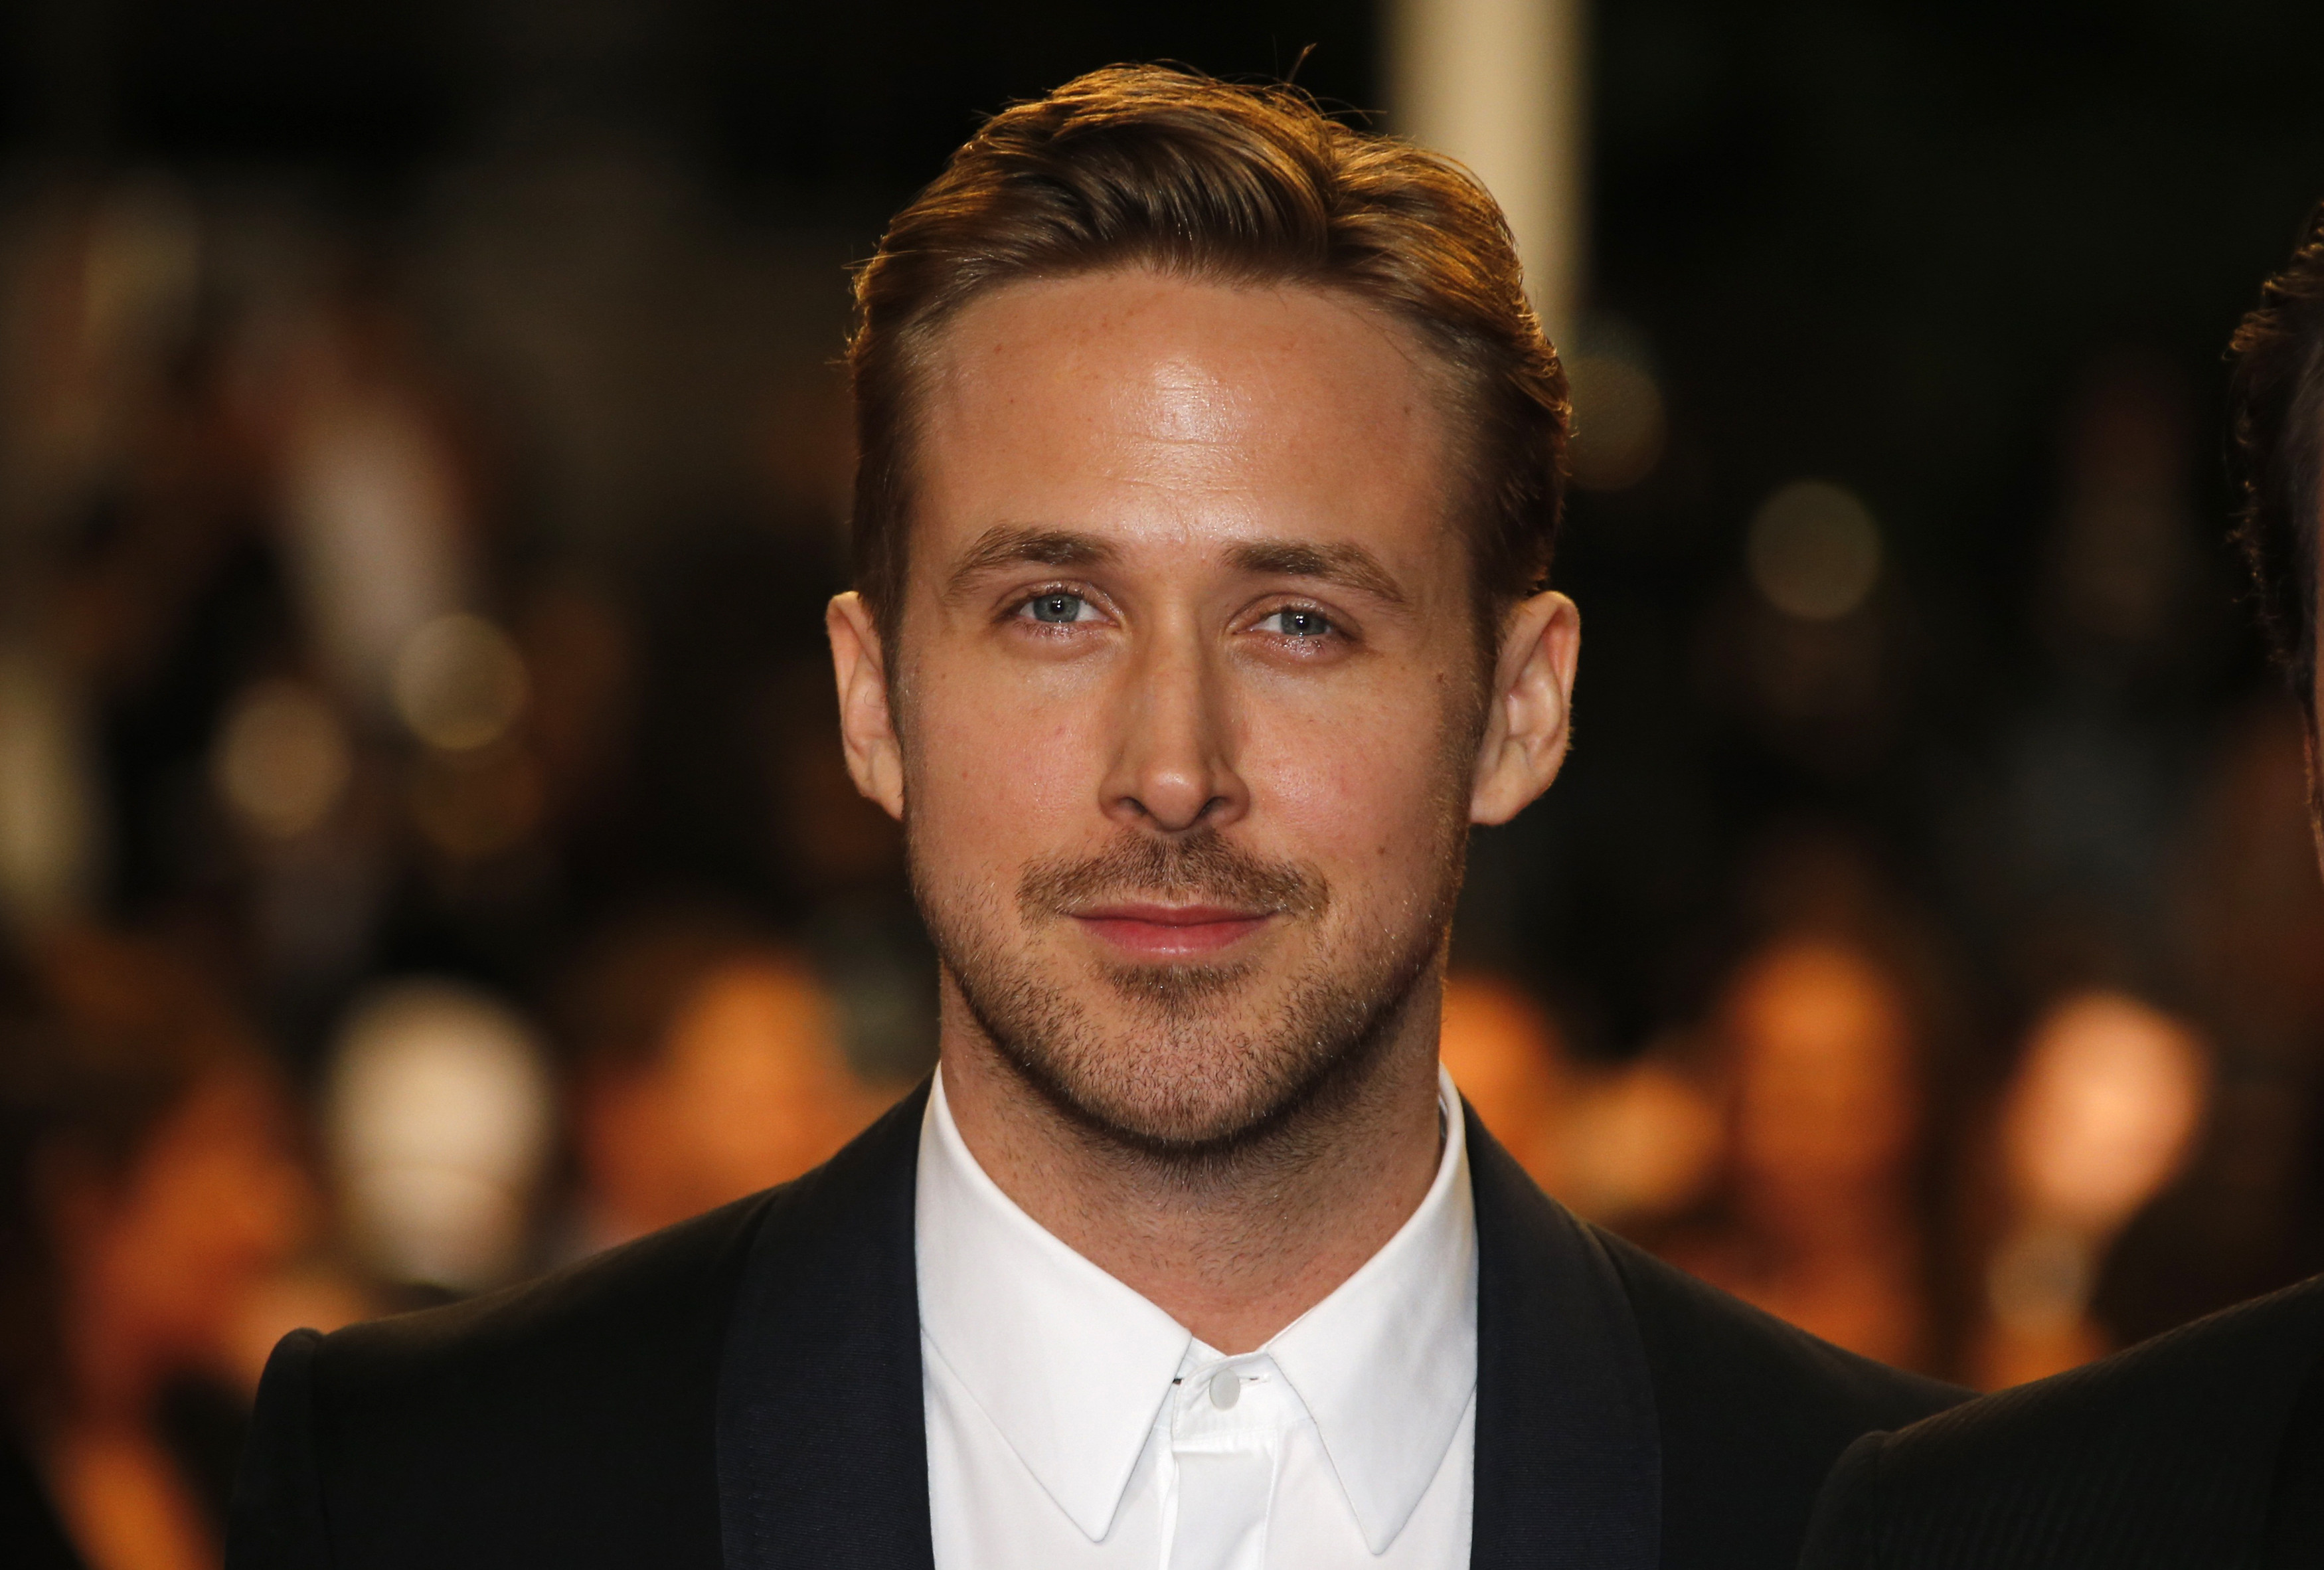 Ryan Gosling Wallpapers Images Photos Pictures Backgrounds 3500x2364